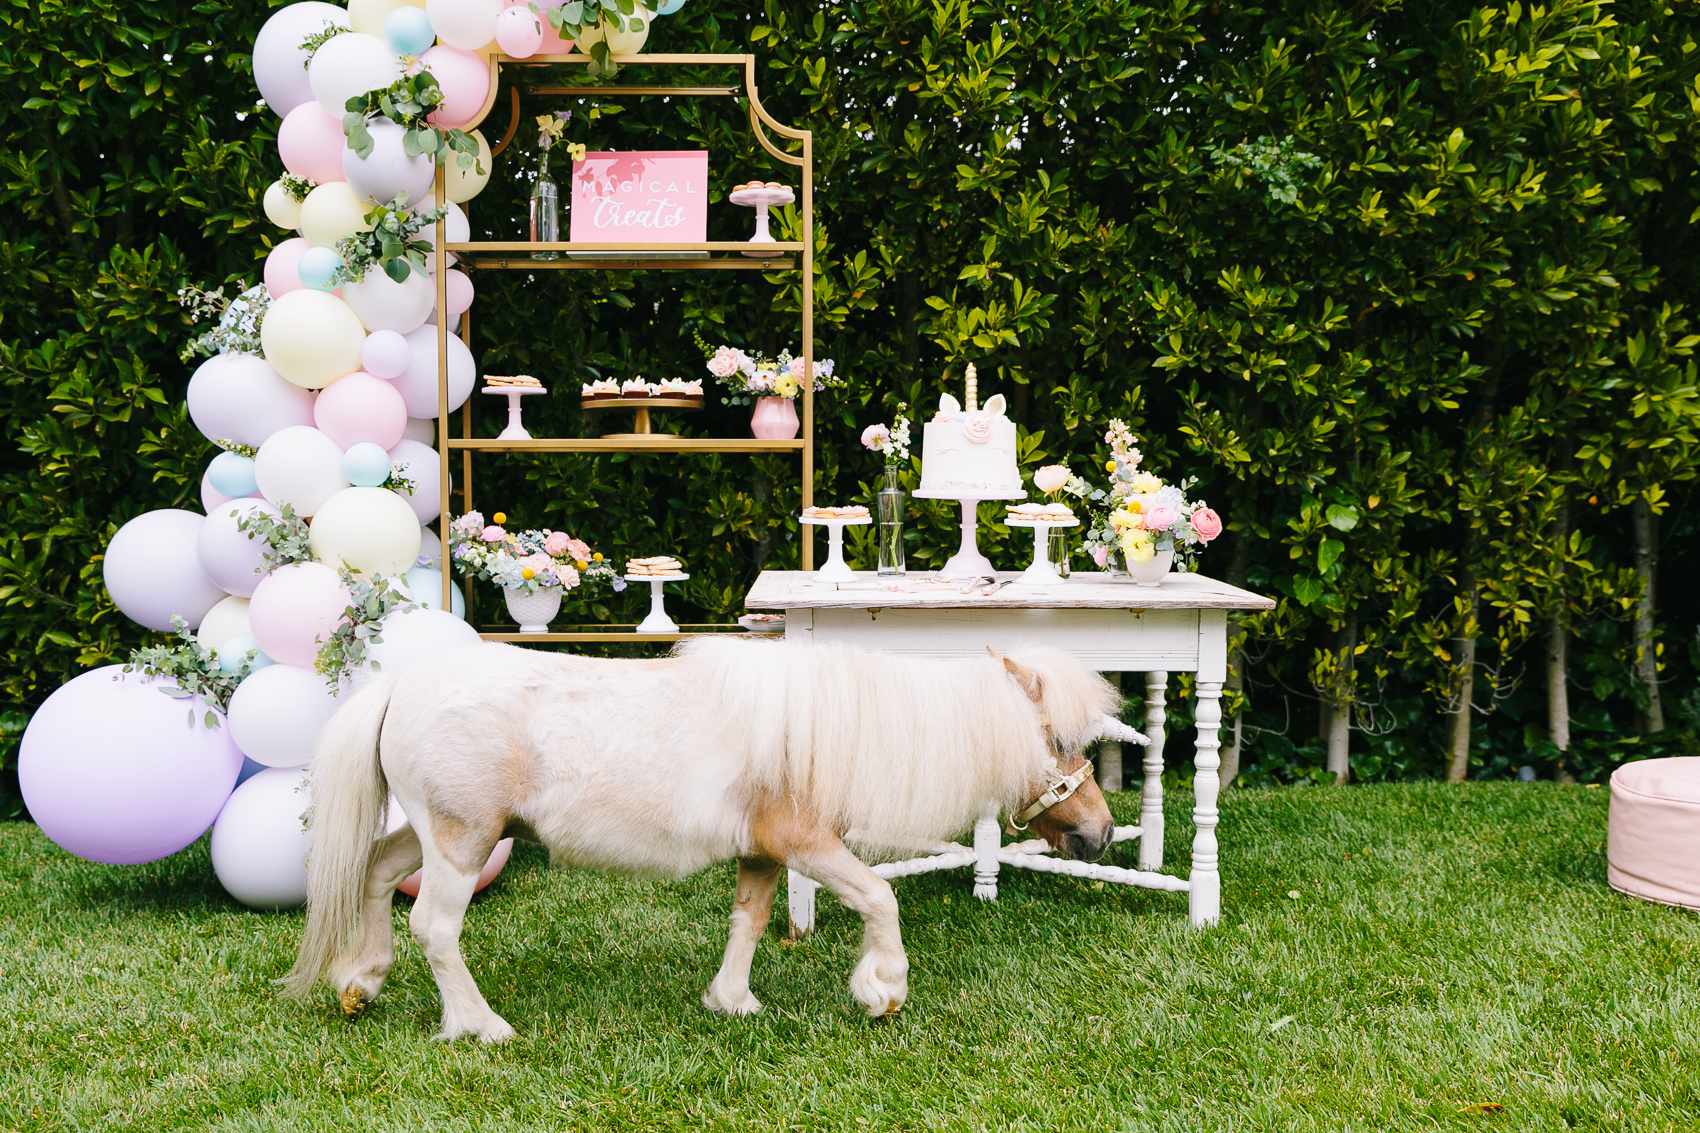 Los_Angeles_Family_Photographer_Luxury_Childrens_Party_Beverly_Hills_Unicorn_Birthday_Party-0578.jpg